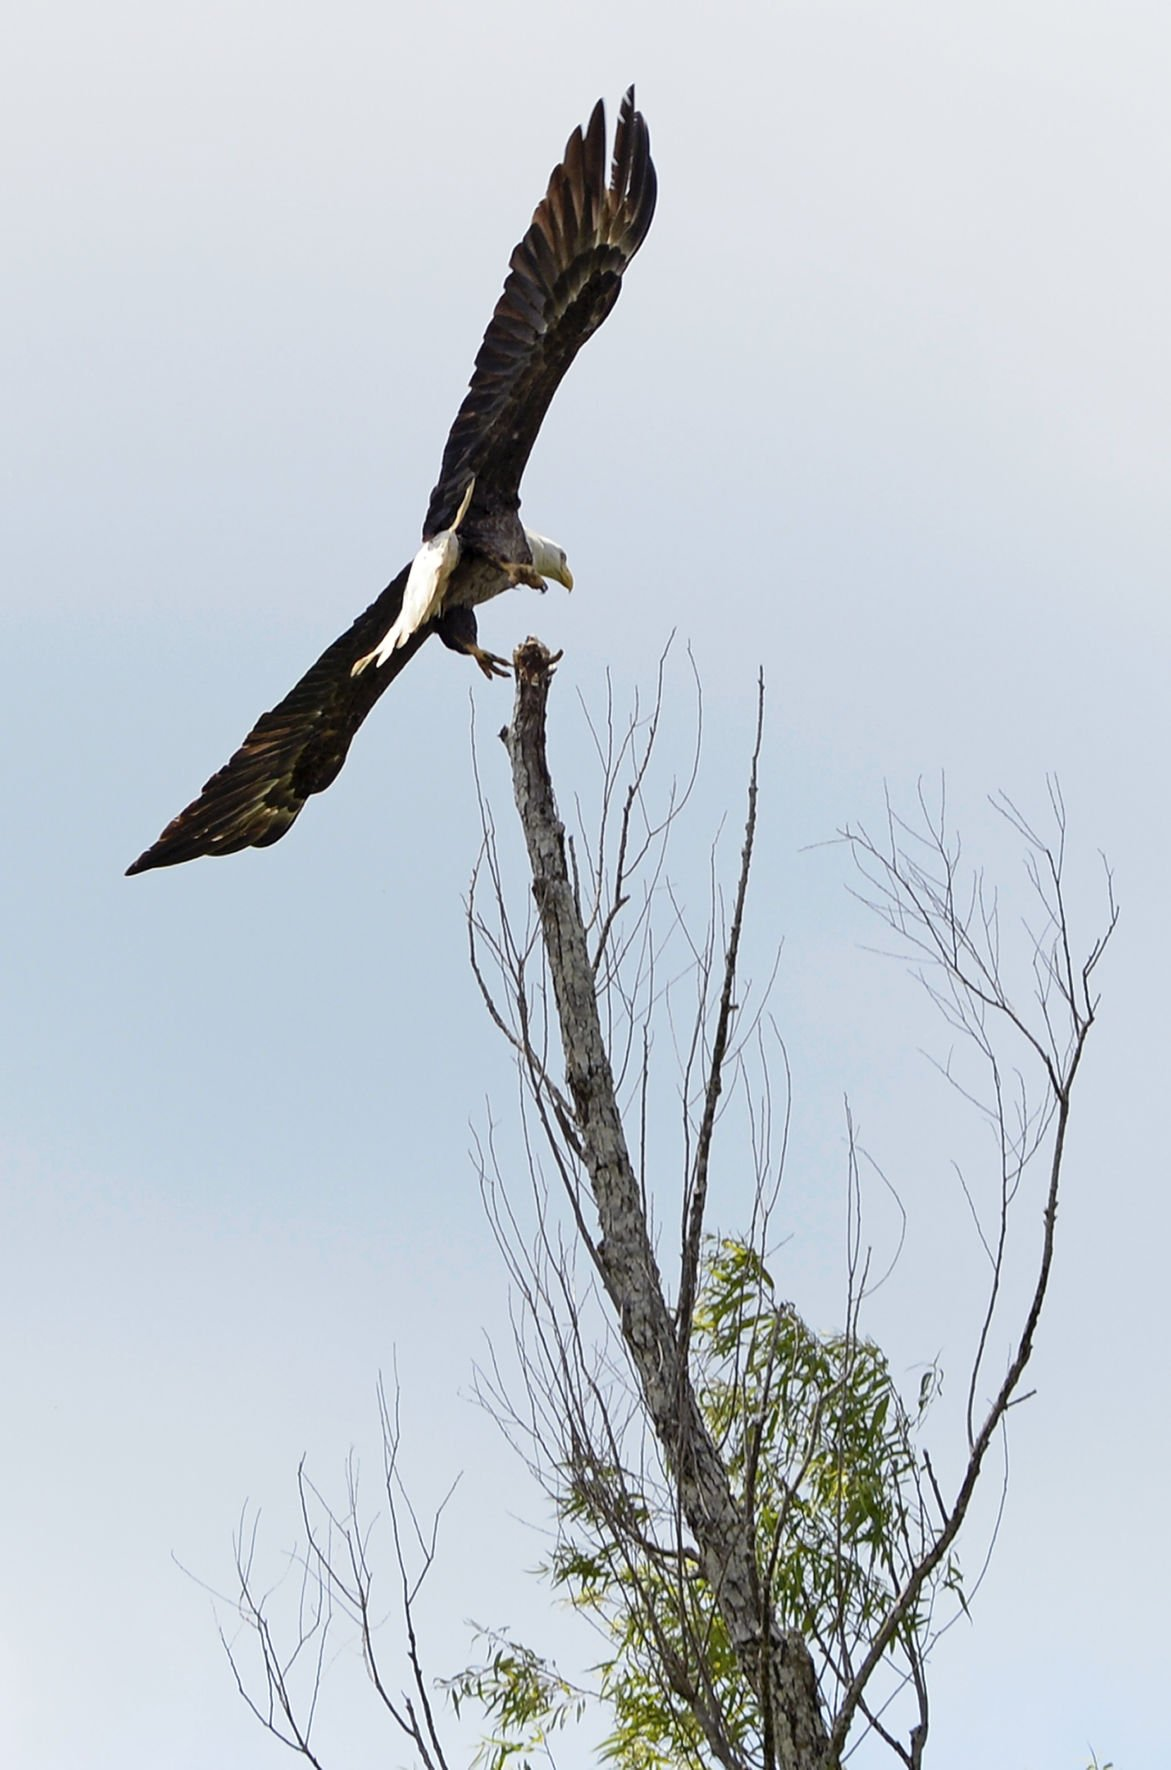 Louisiana S Bald Eagle Population Soaring Again After Years On The Brink Environment Theadvocate Com